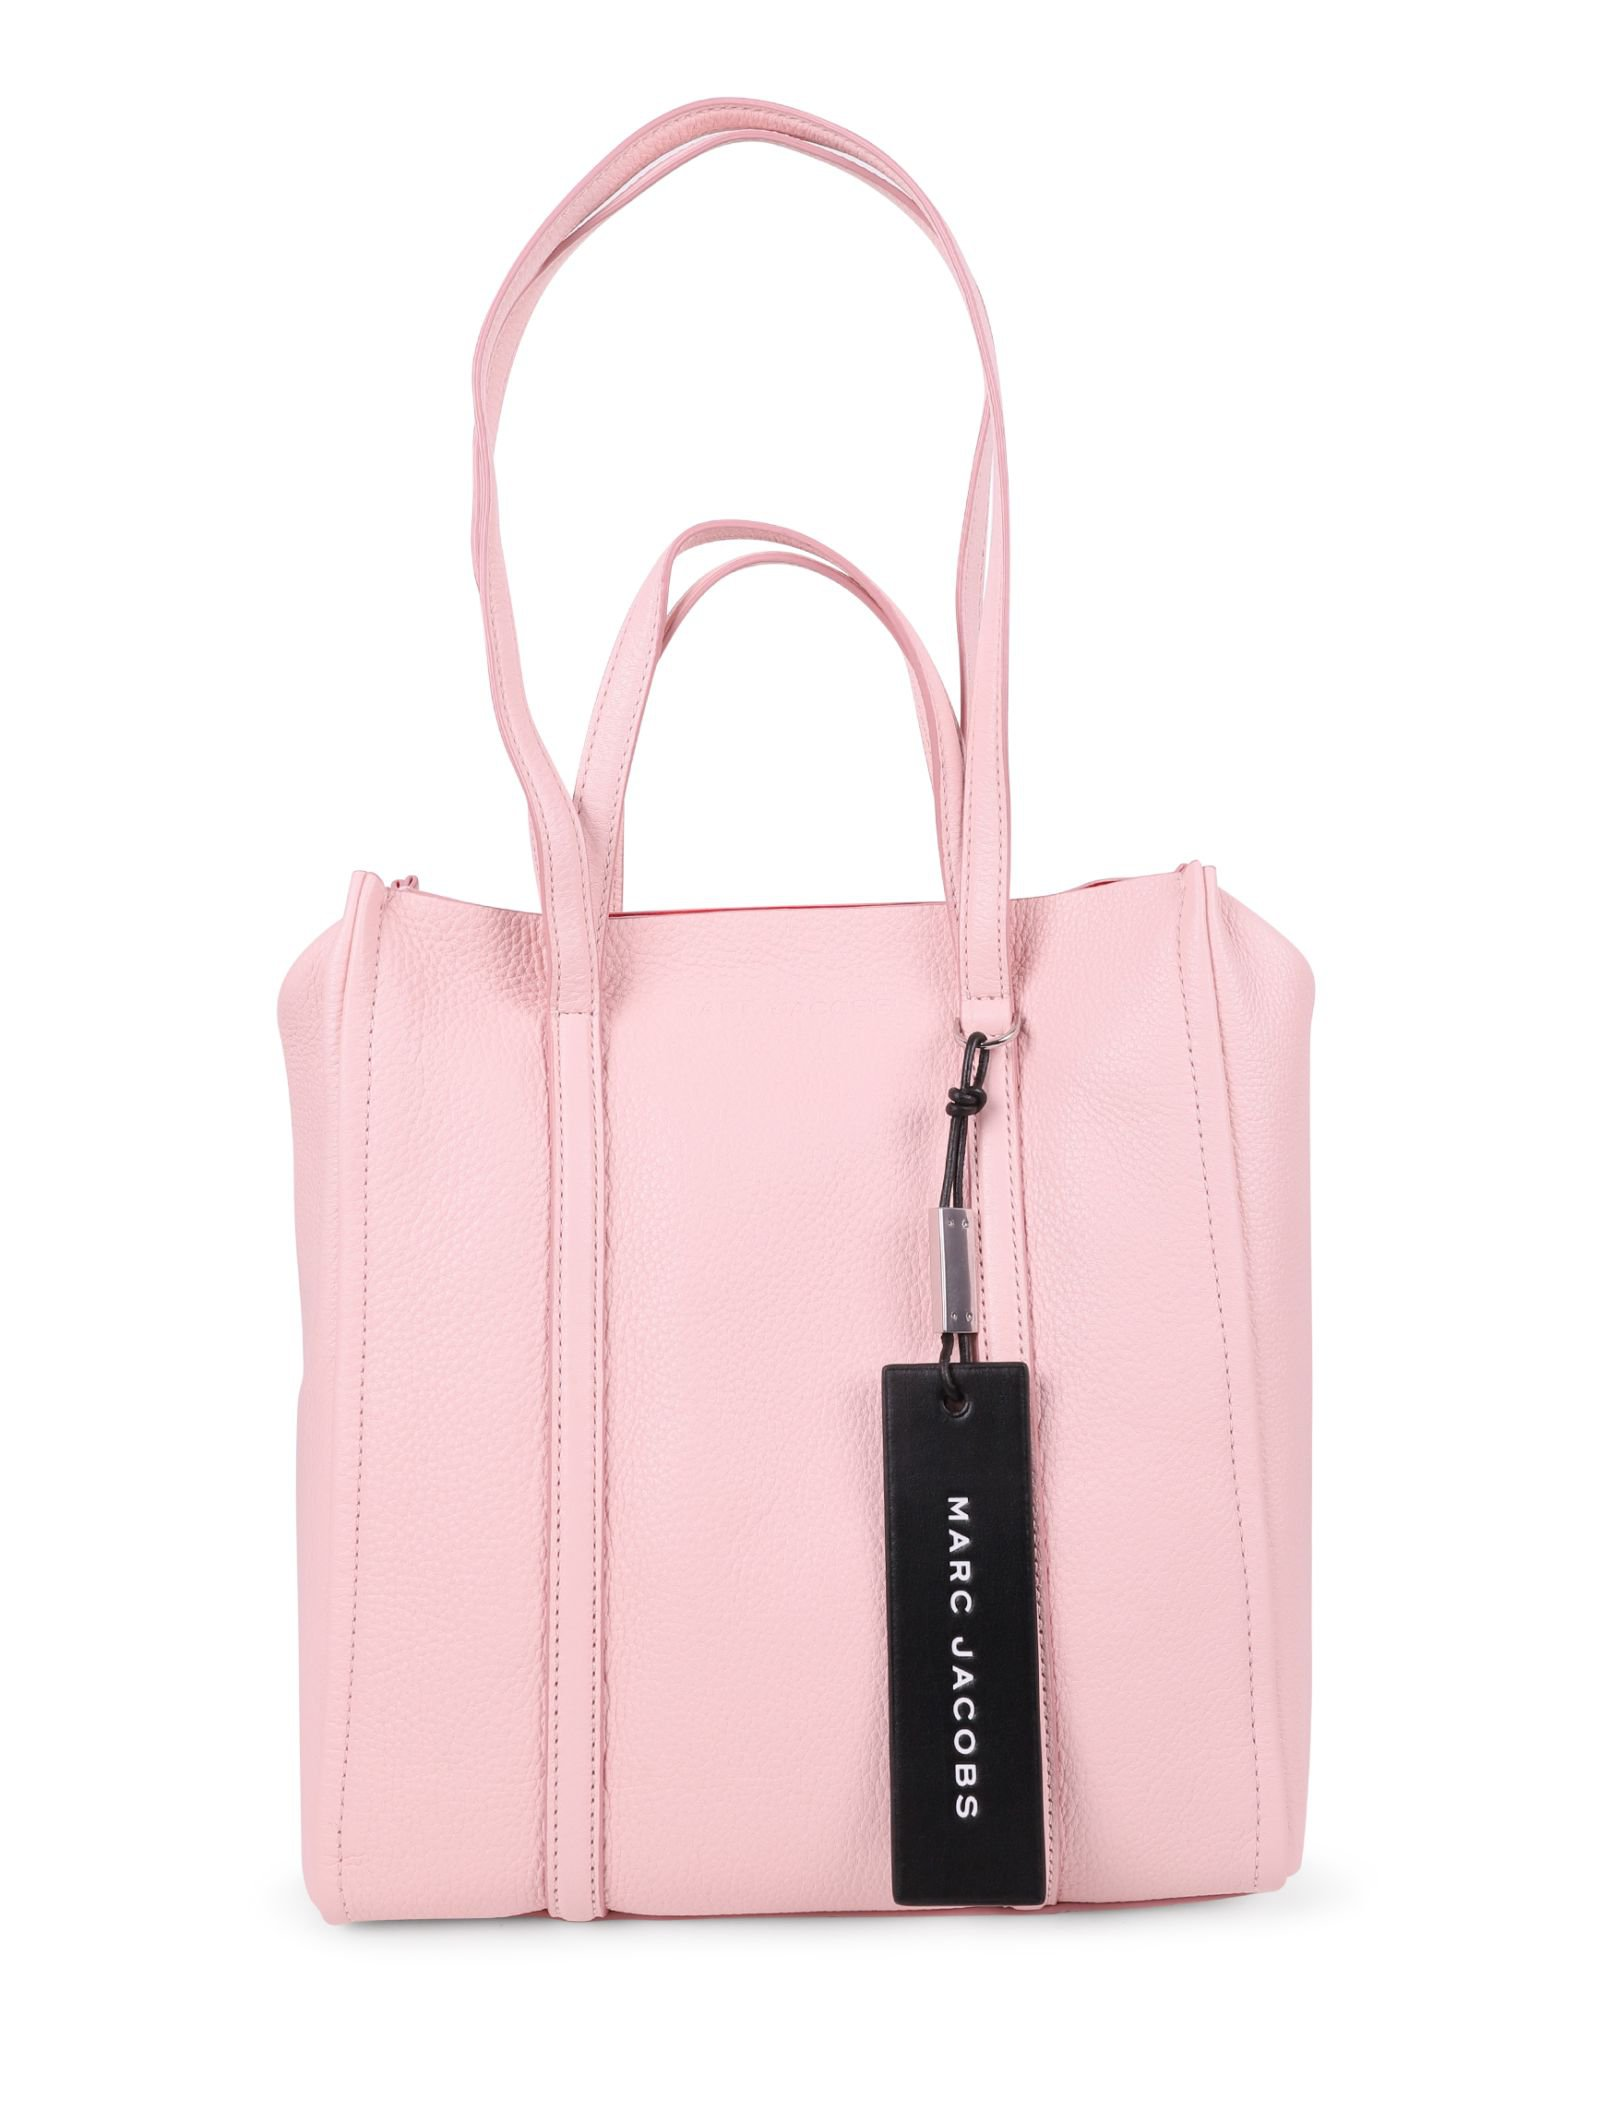 Marc Jacobs Blush Tag Tote 27 Bag